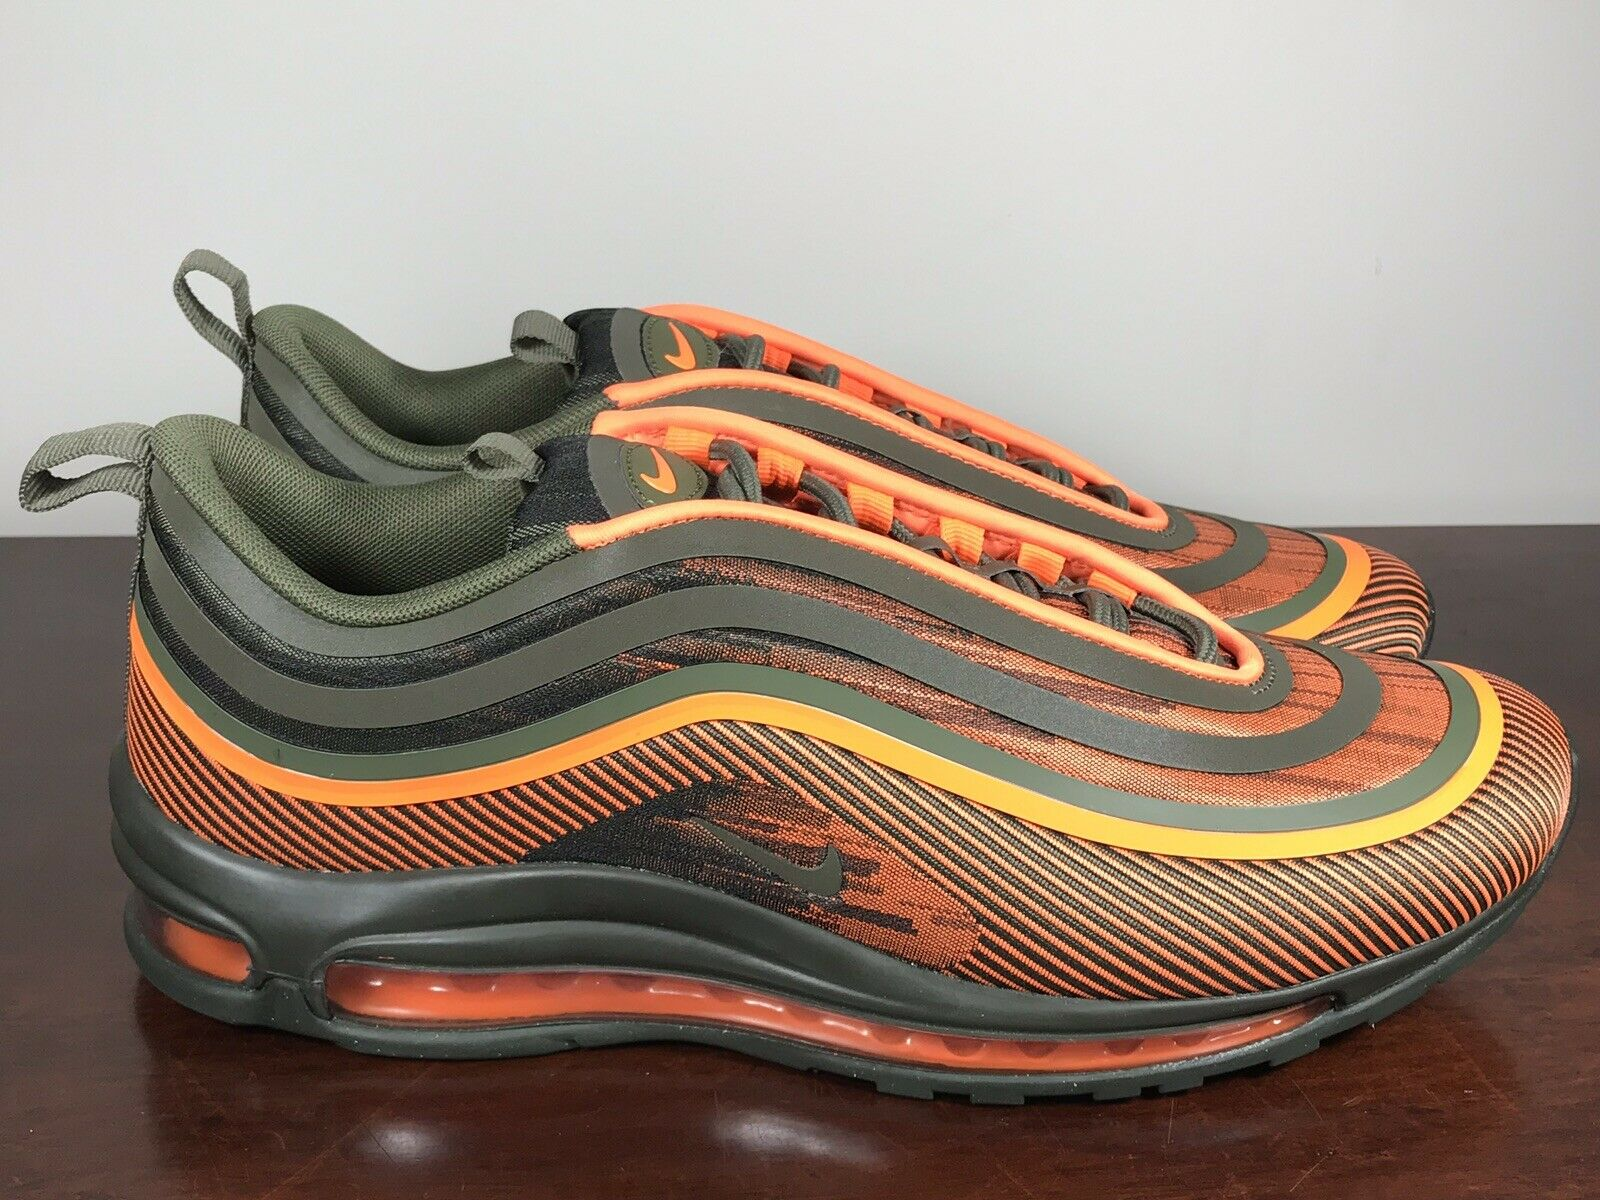 Mens Nike Air Max 97 Ultra '17 Total orange Olive Running shoes 918356-801 Sz 10